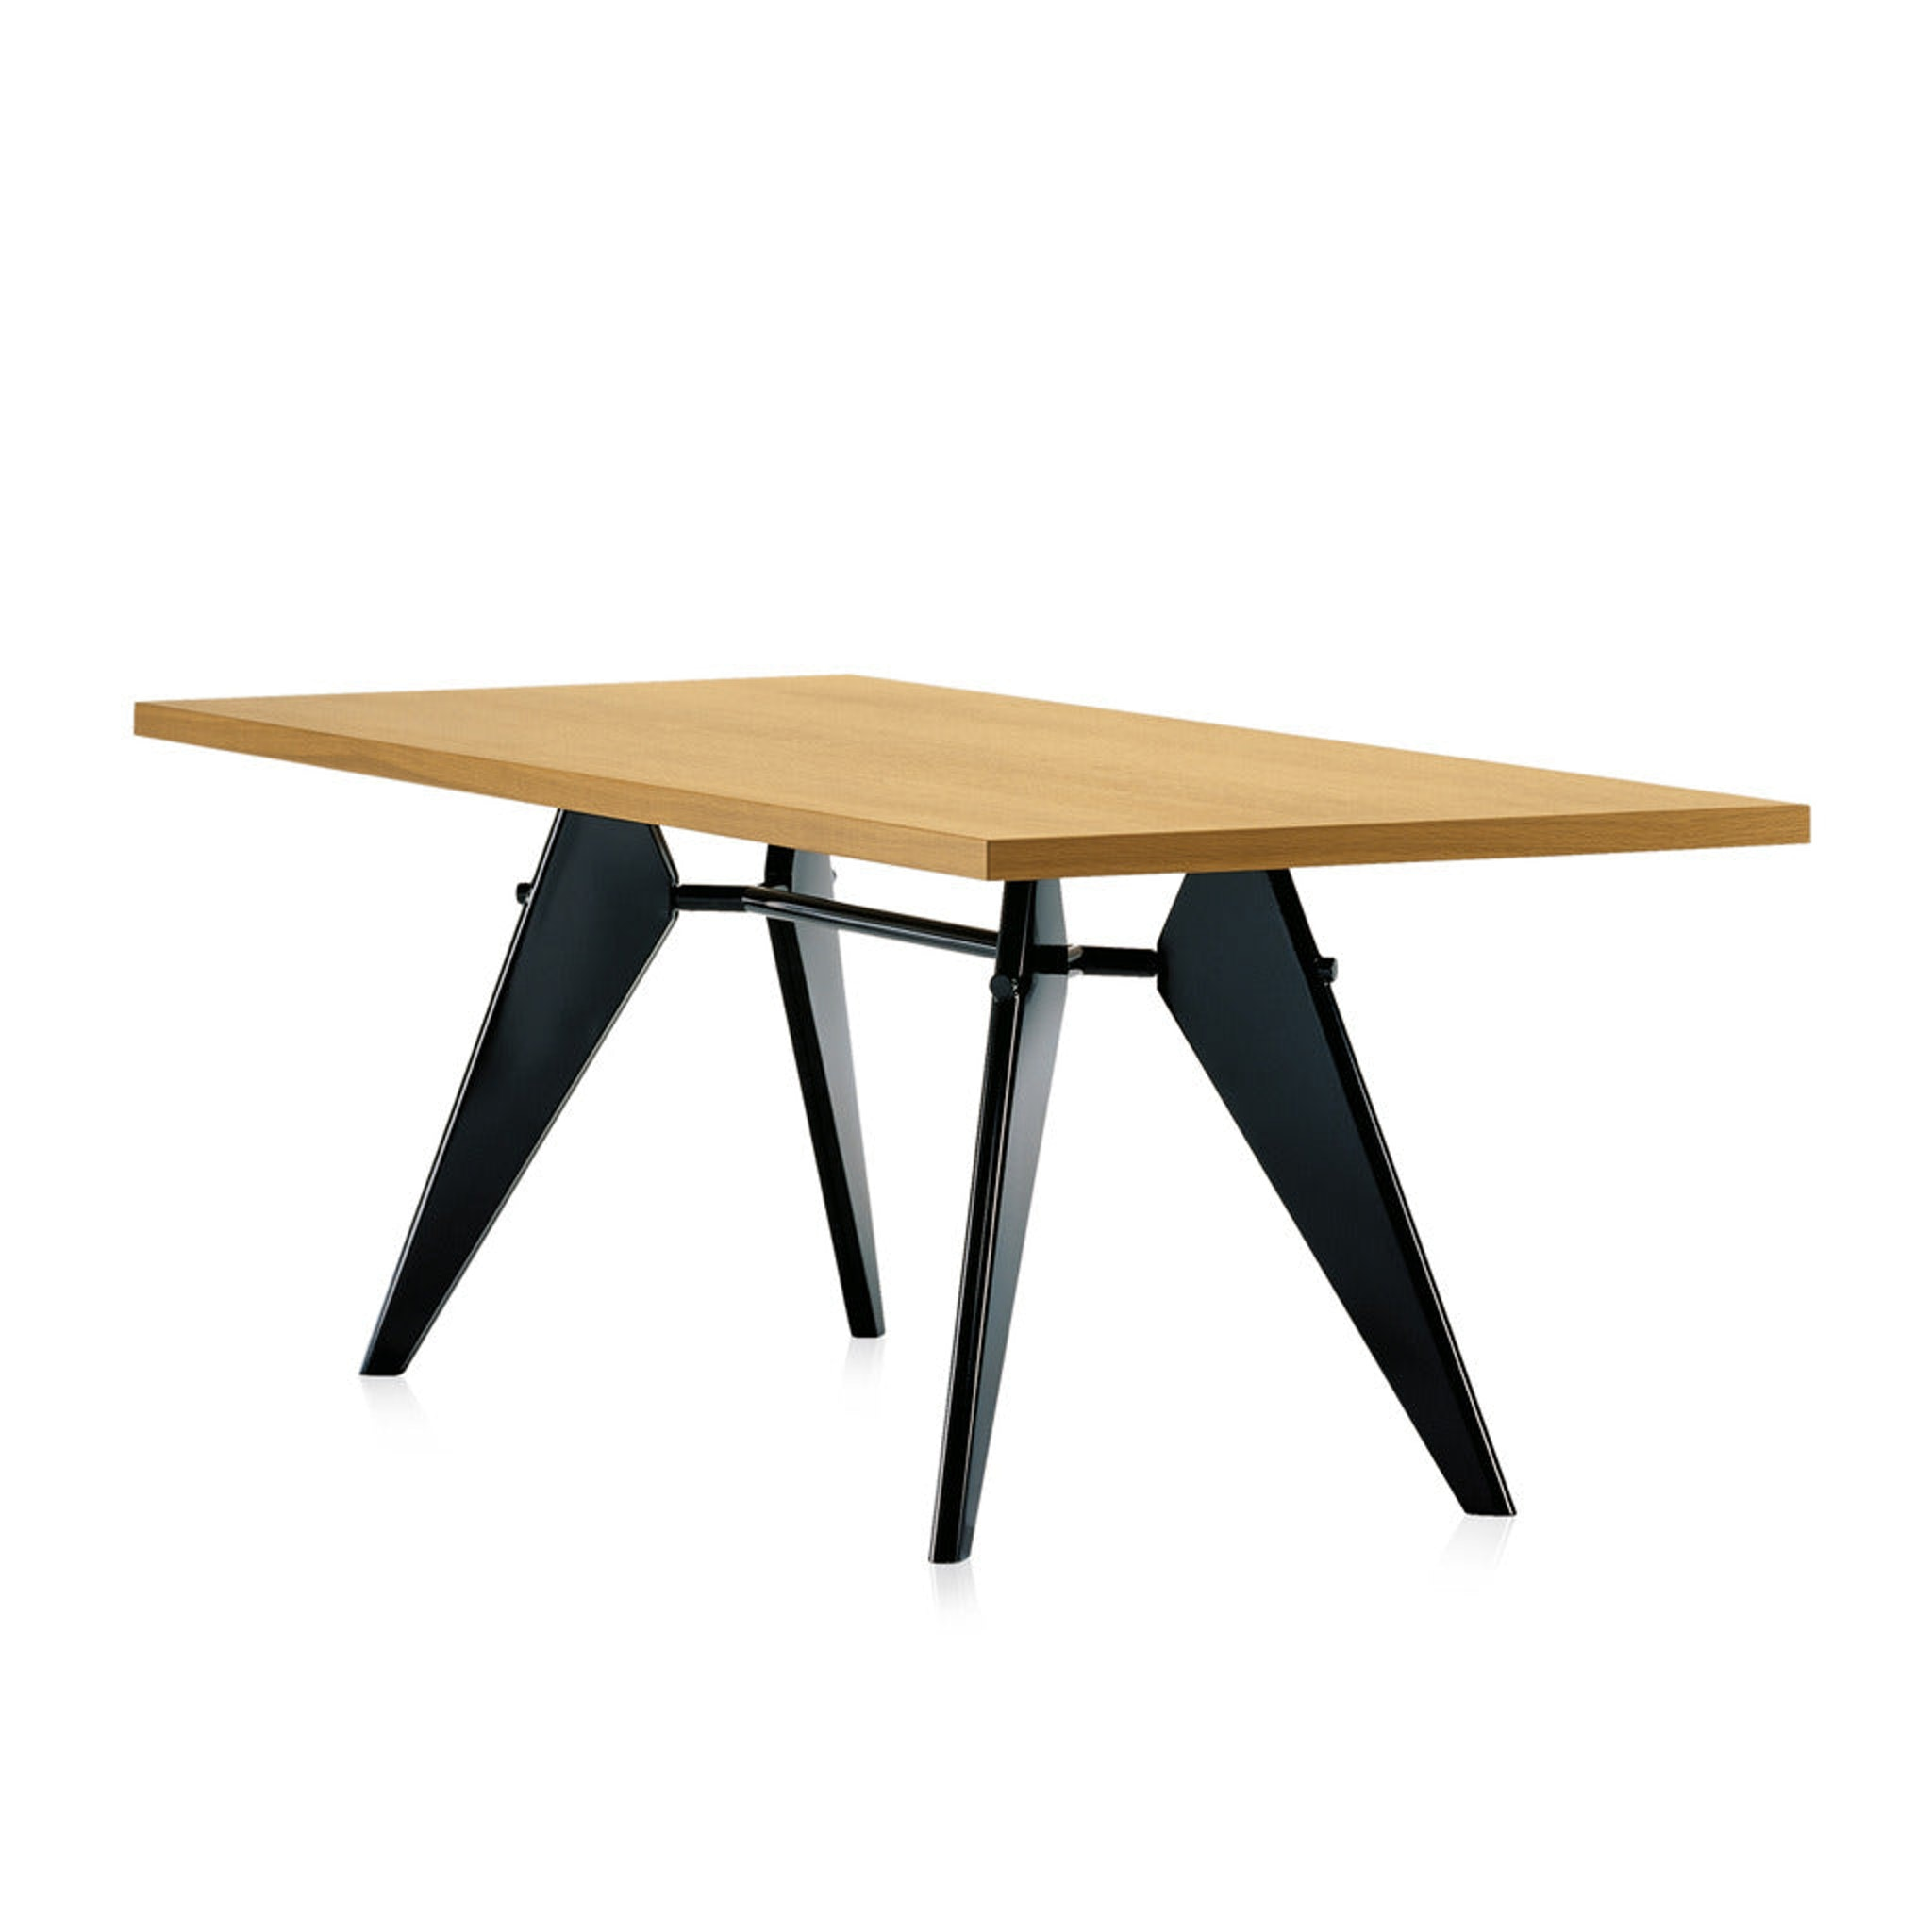 EM Table by Vitra